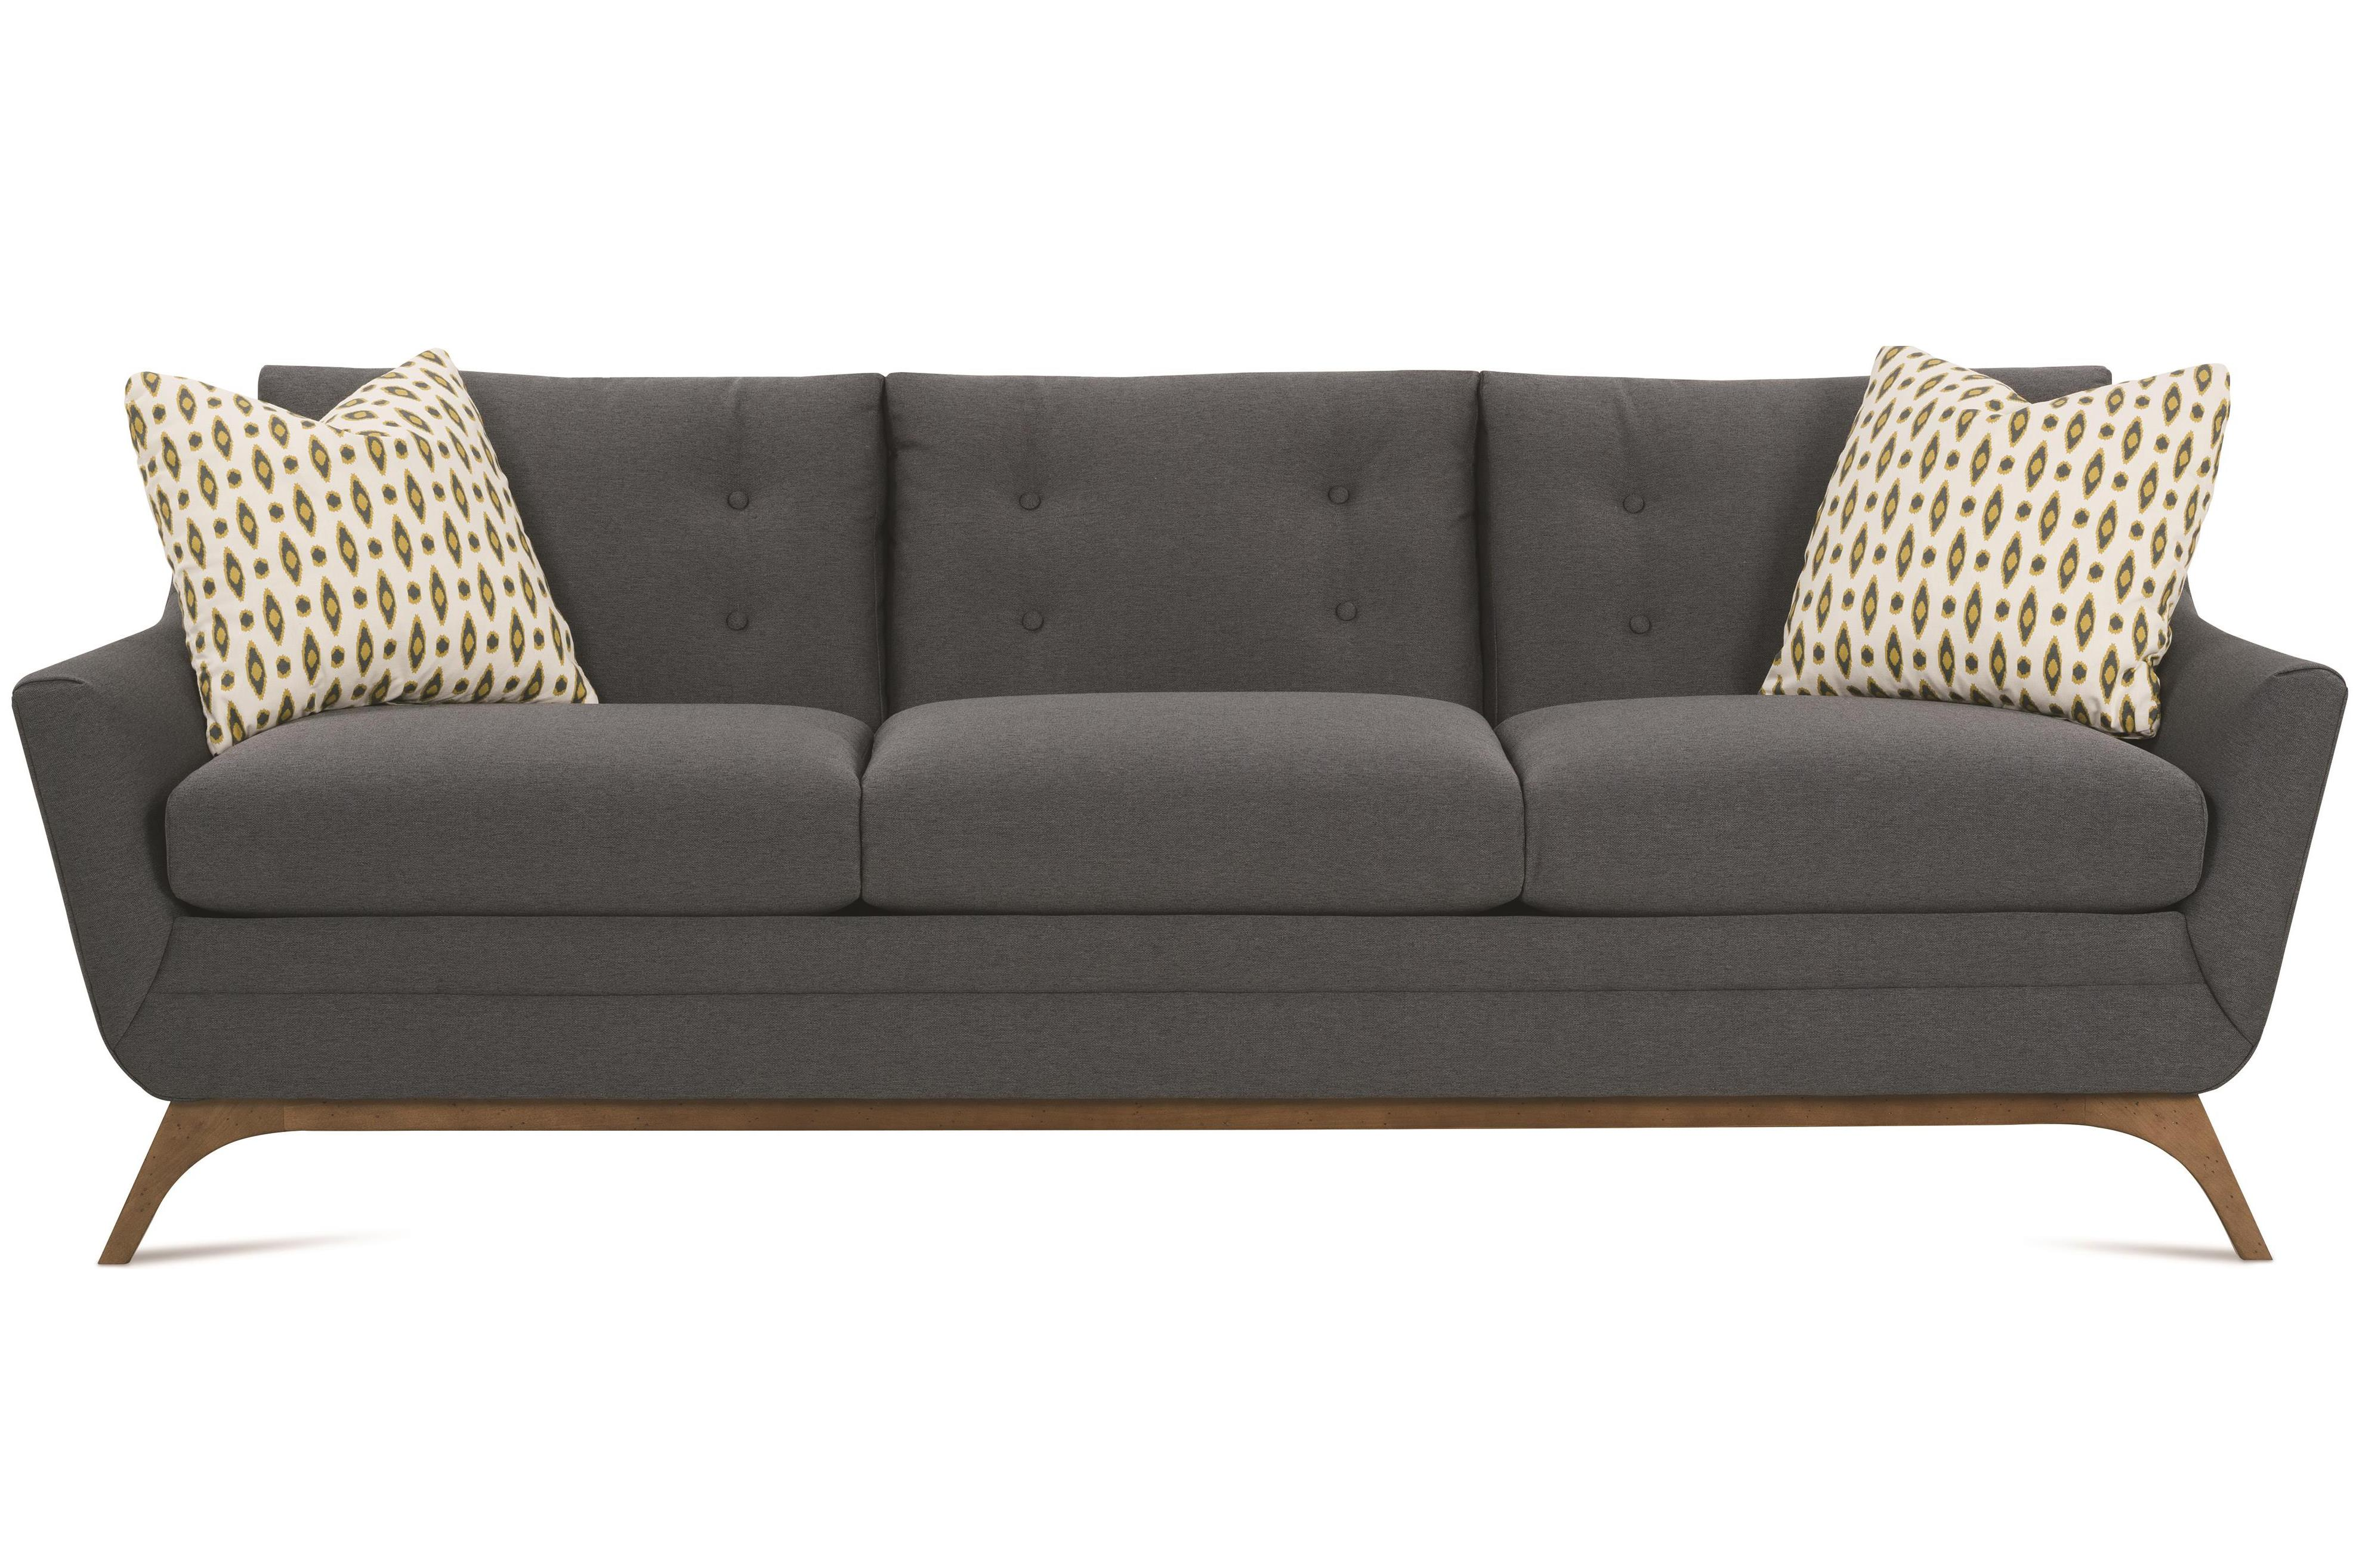 sofa cleaning los angeles catnapper and loveseat mid century modern at reeds furniture